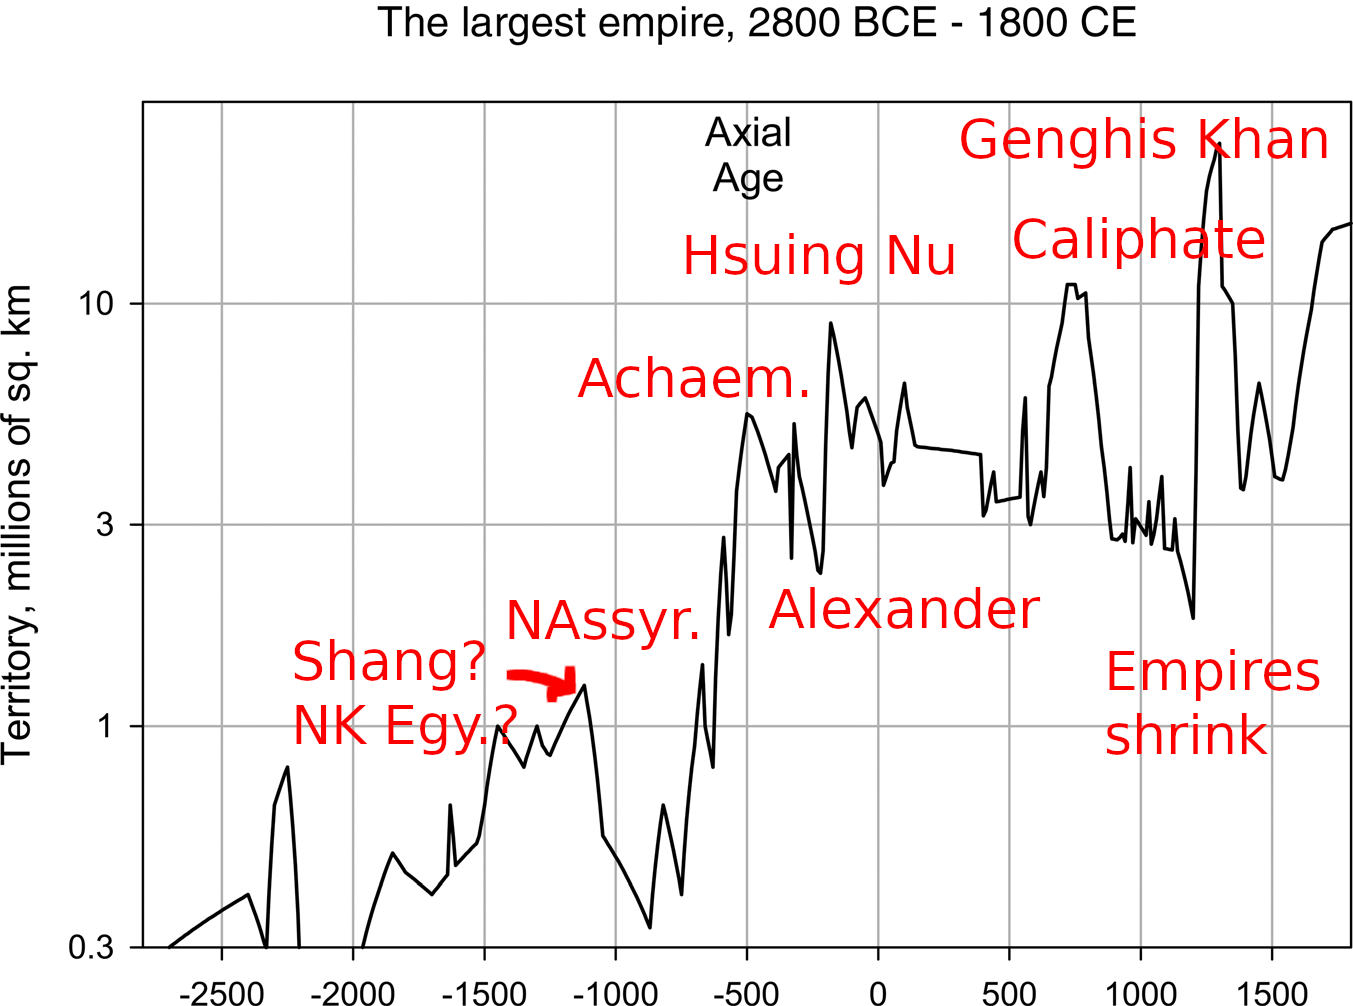 A line charg ofthe largest state on earth 2800 BCE to 1800 BCE. Between 1000 BCE the size collapses, then more than doubles and remains high from 500 BCE onwards